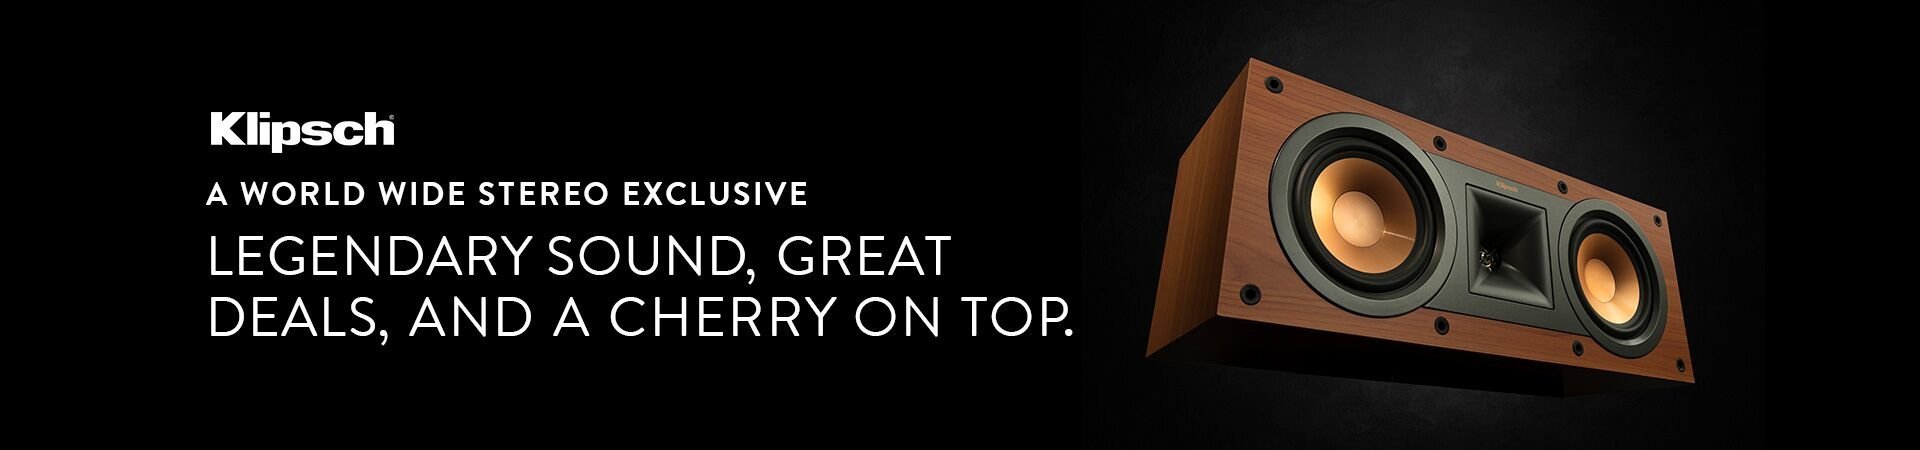 Klipsch Reference Speakers Cherry Announcement